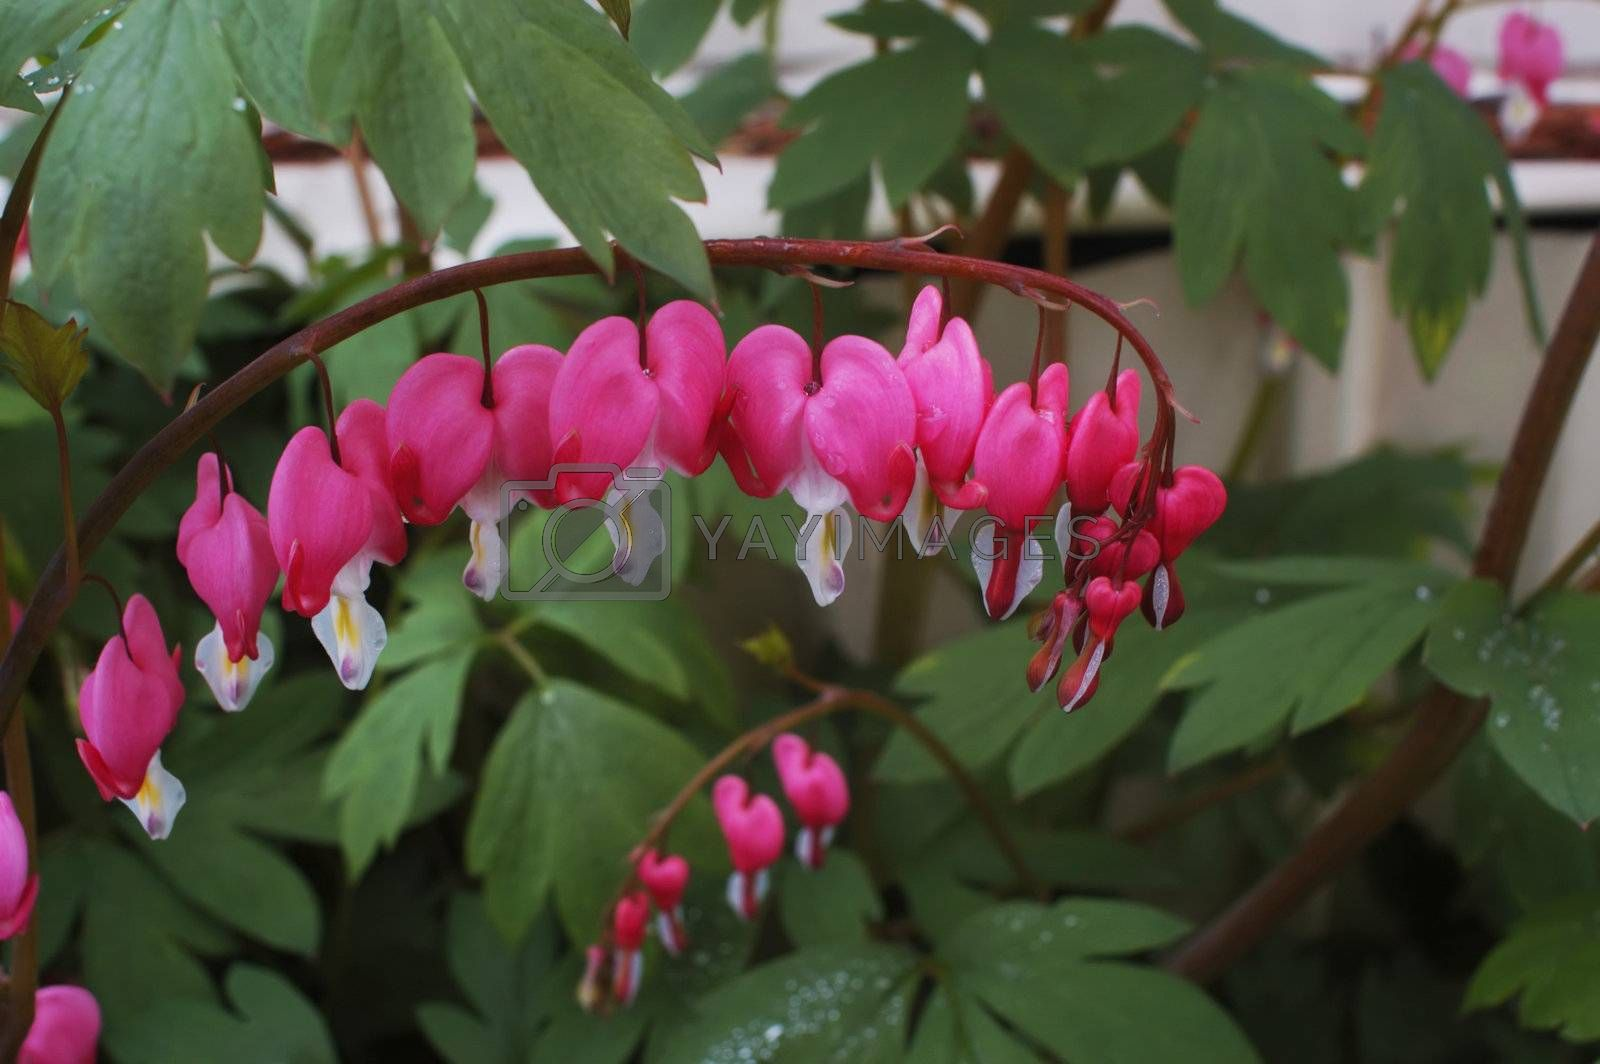 A branch of bleeding hearts hang delicately from the parent plant after a soft spring rain.